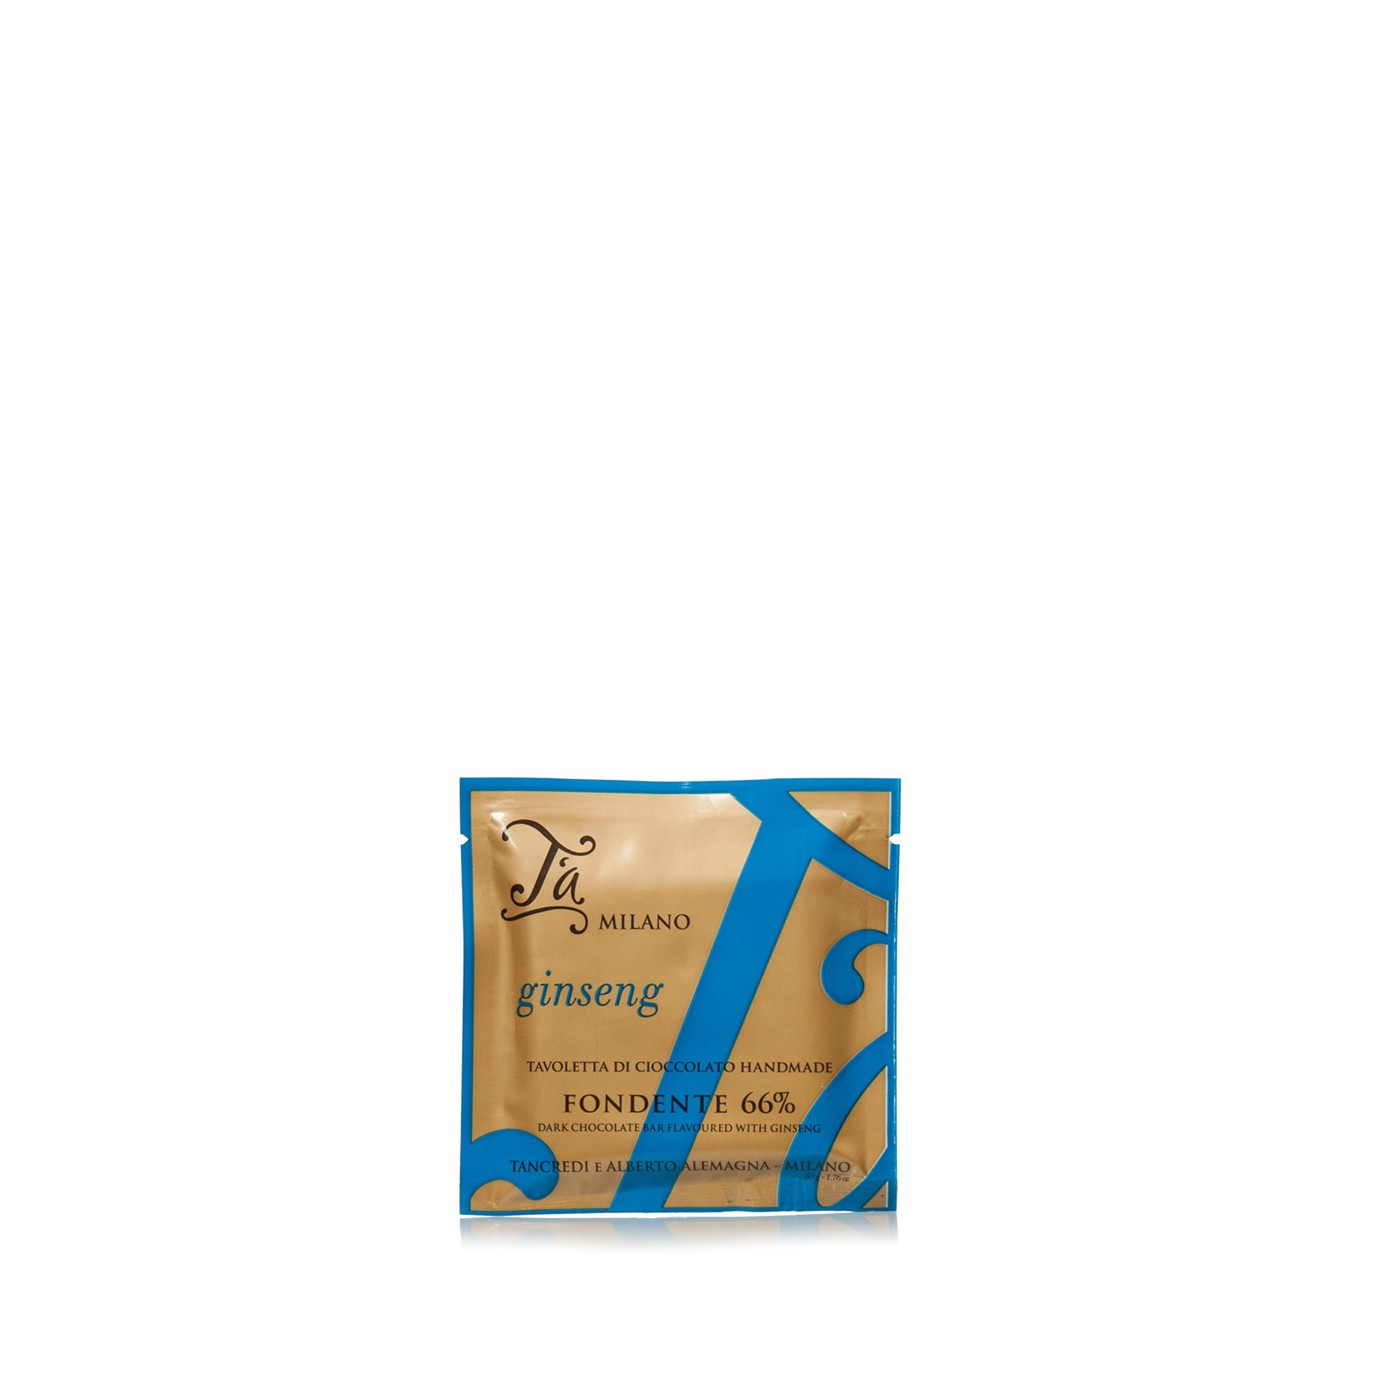 Grand Cru Ginseng Dark Chocolate Bar 1 oz